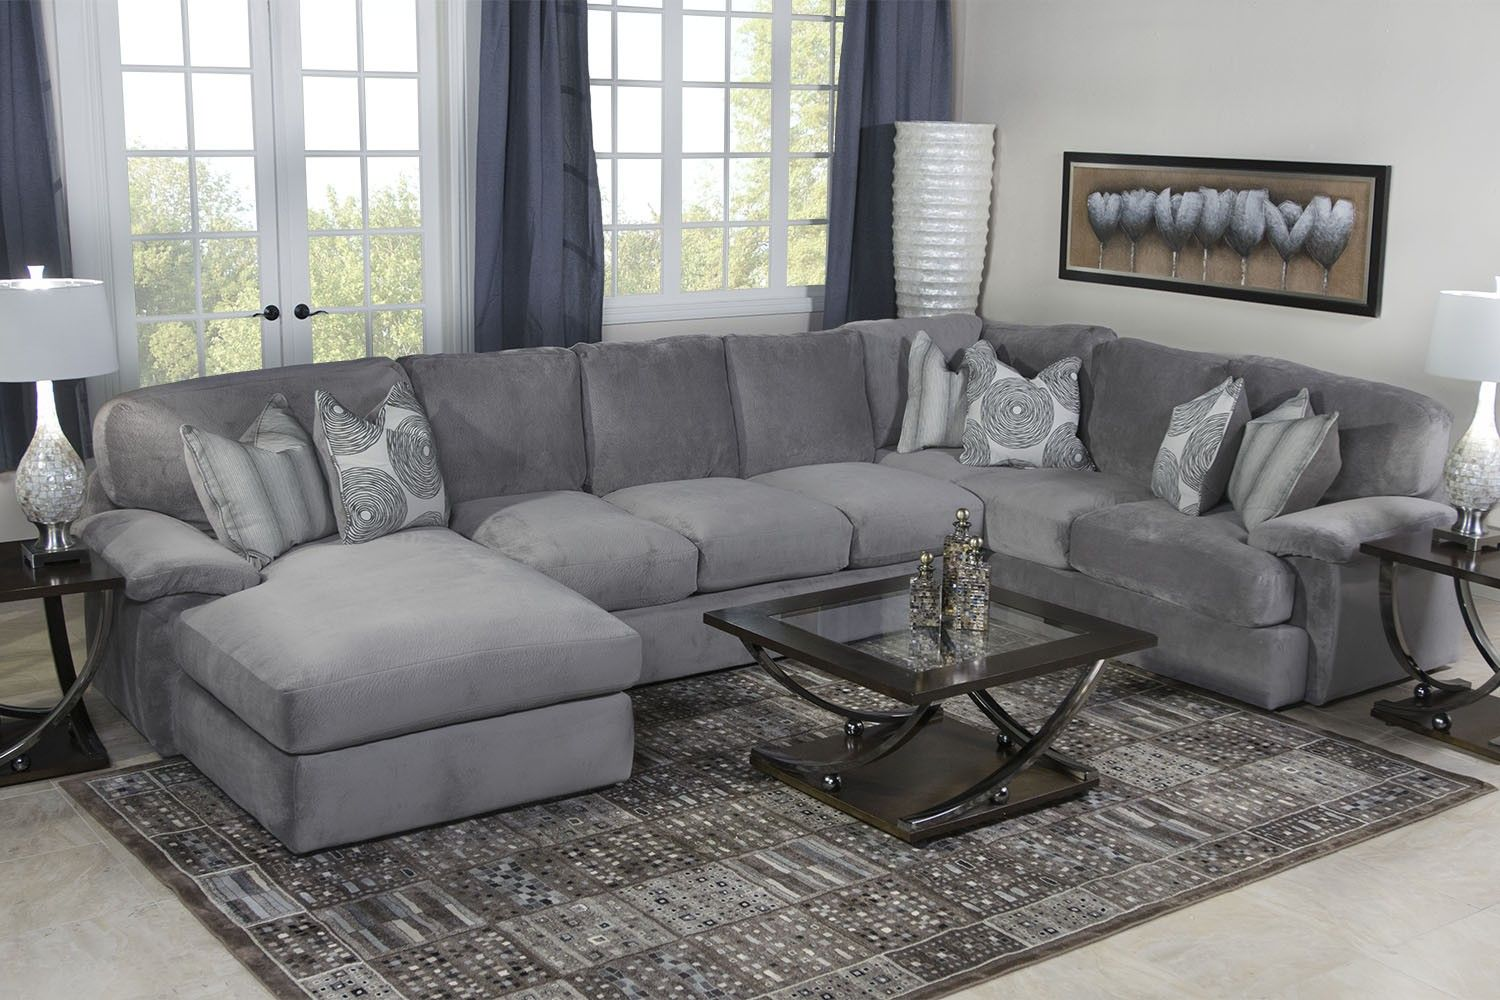 Sofa Design Grey Colour Key West Sectional Living Room In Gray - Living Room | Mor